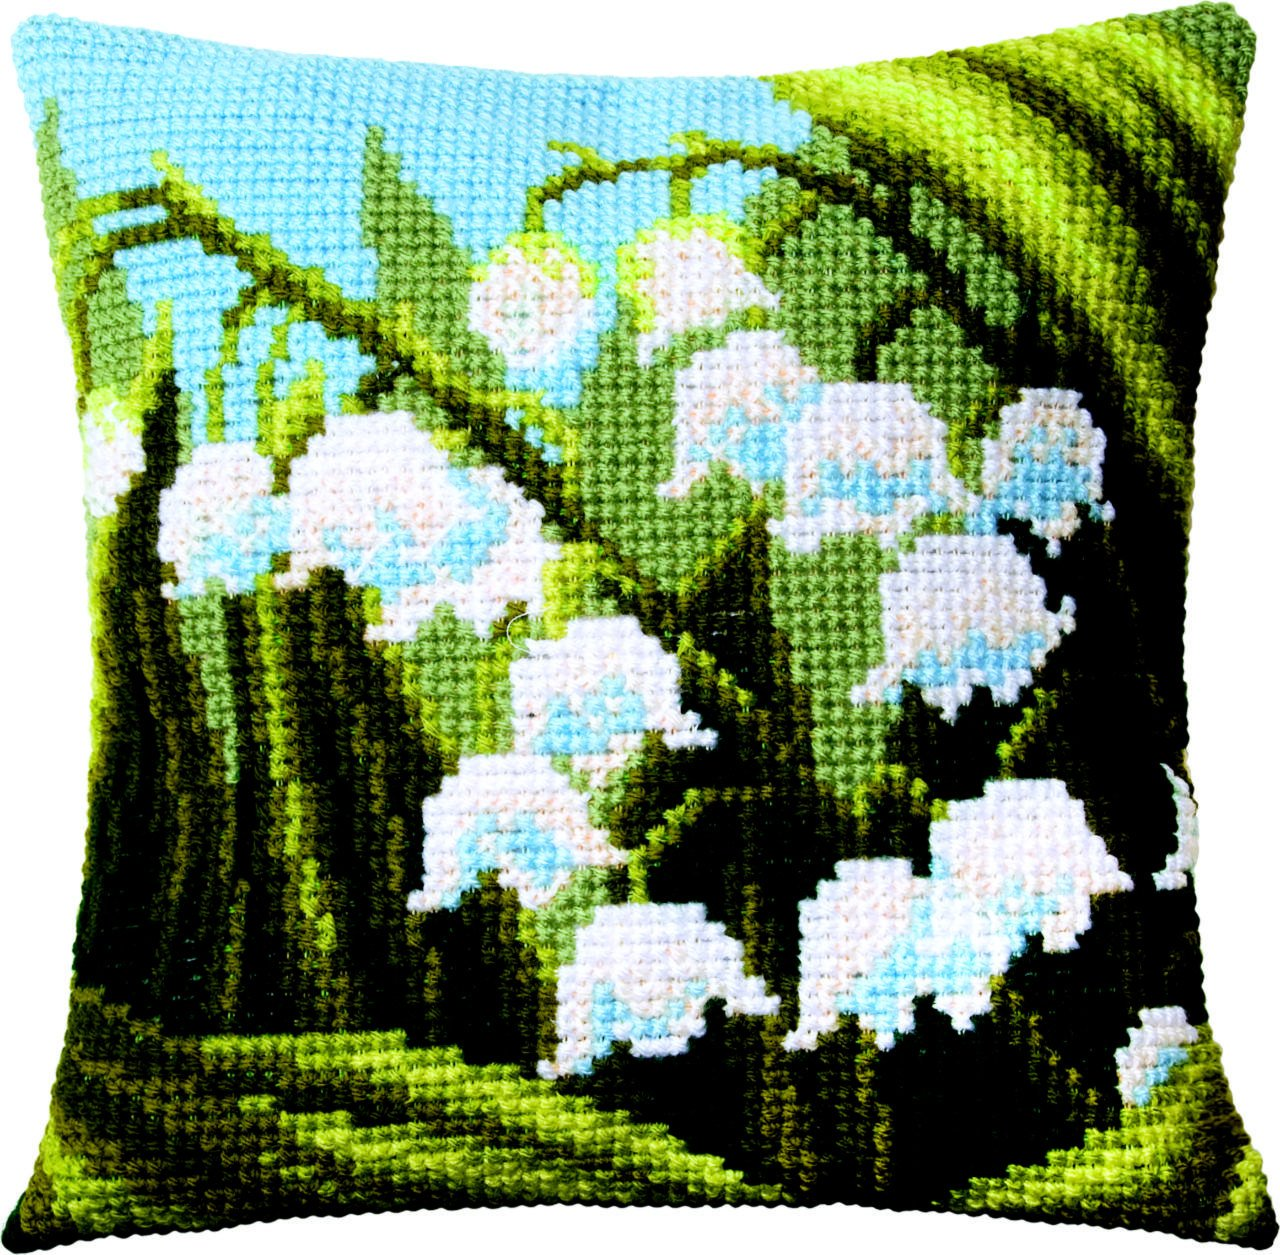 EMBROIDERY KIT COUNTED CROSS STITCH PILLOW CHARIVNA MIT LILY OF THE VALLEY RT171